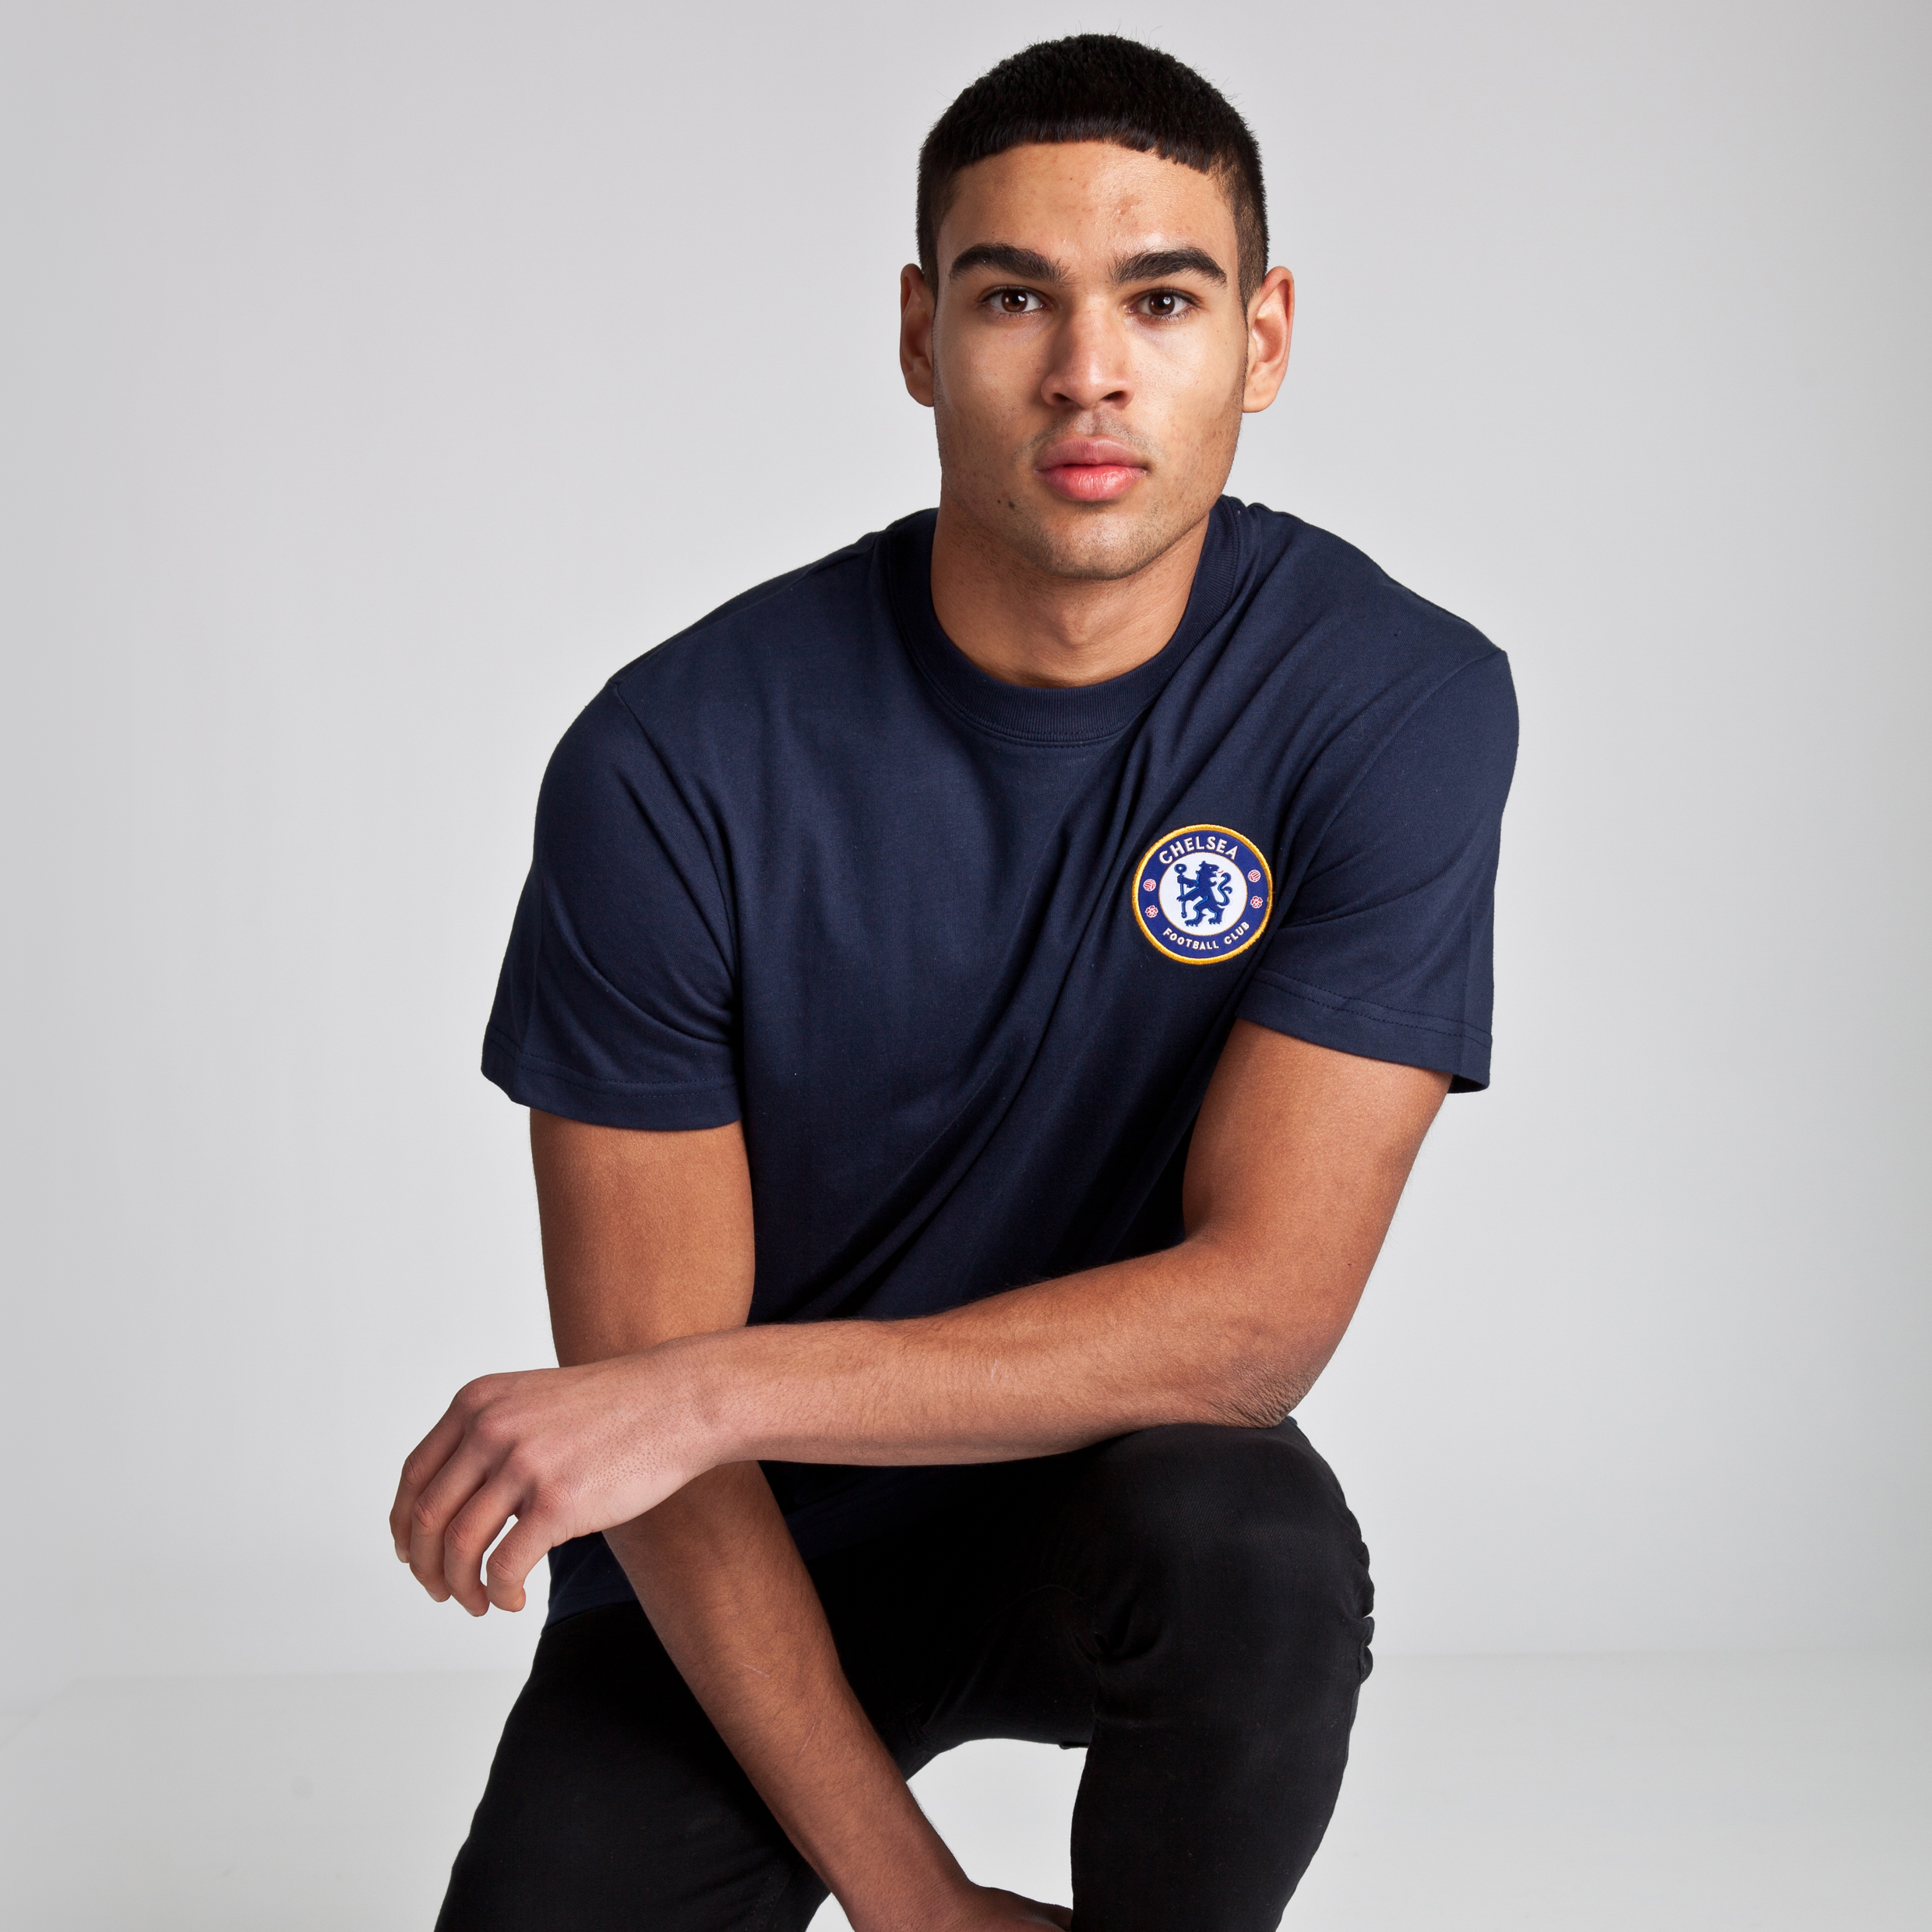 Chelsea Basic Crest T-Shirt - Navy